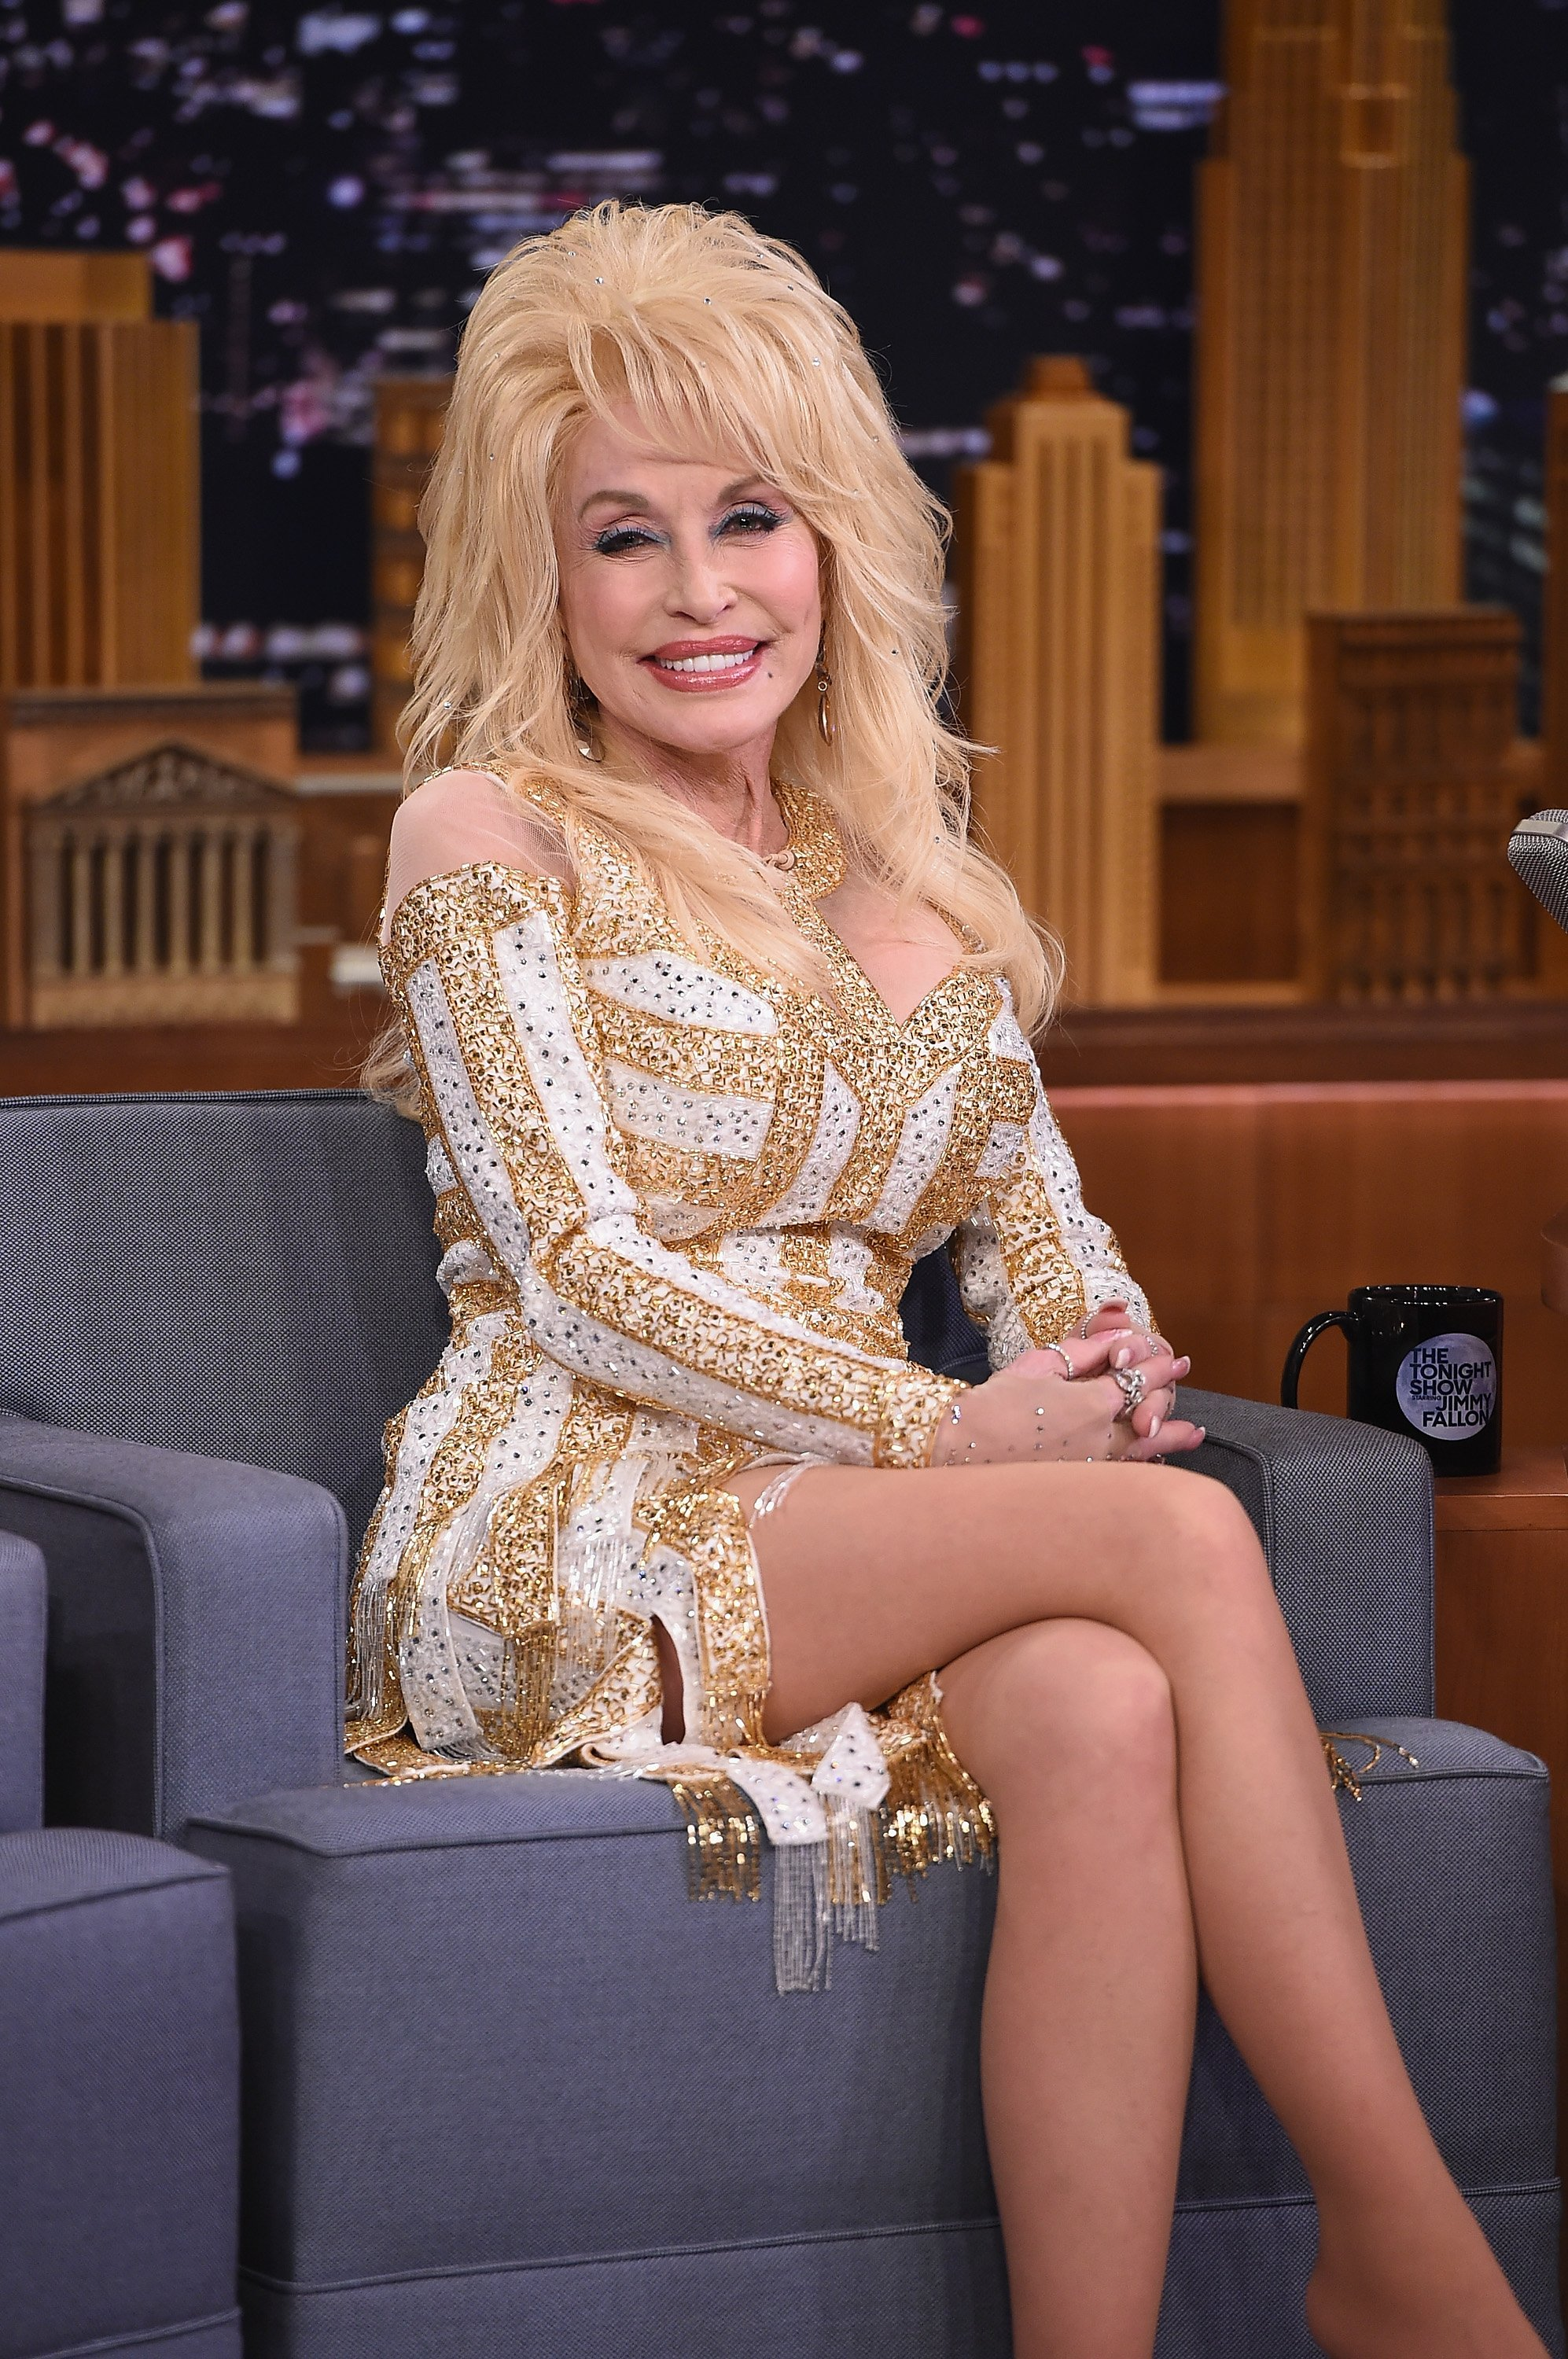 Dolly Parton Visits 'The Tonight Show Starring Jimmy Fallon' at Rockefeller Center on August 23, 2016 in New York City